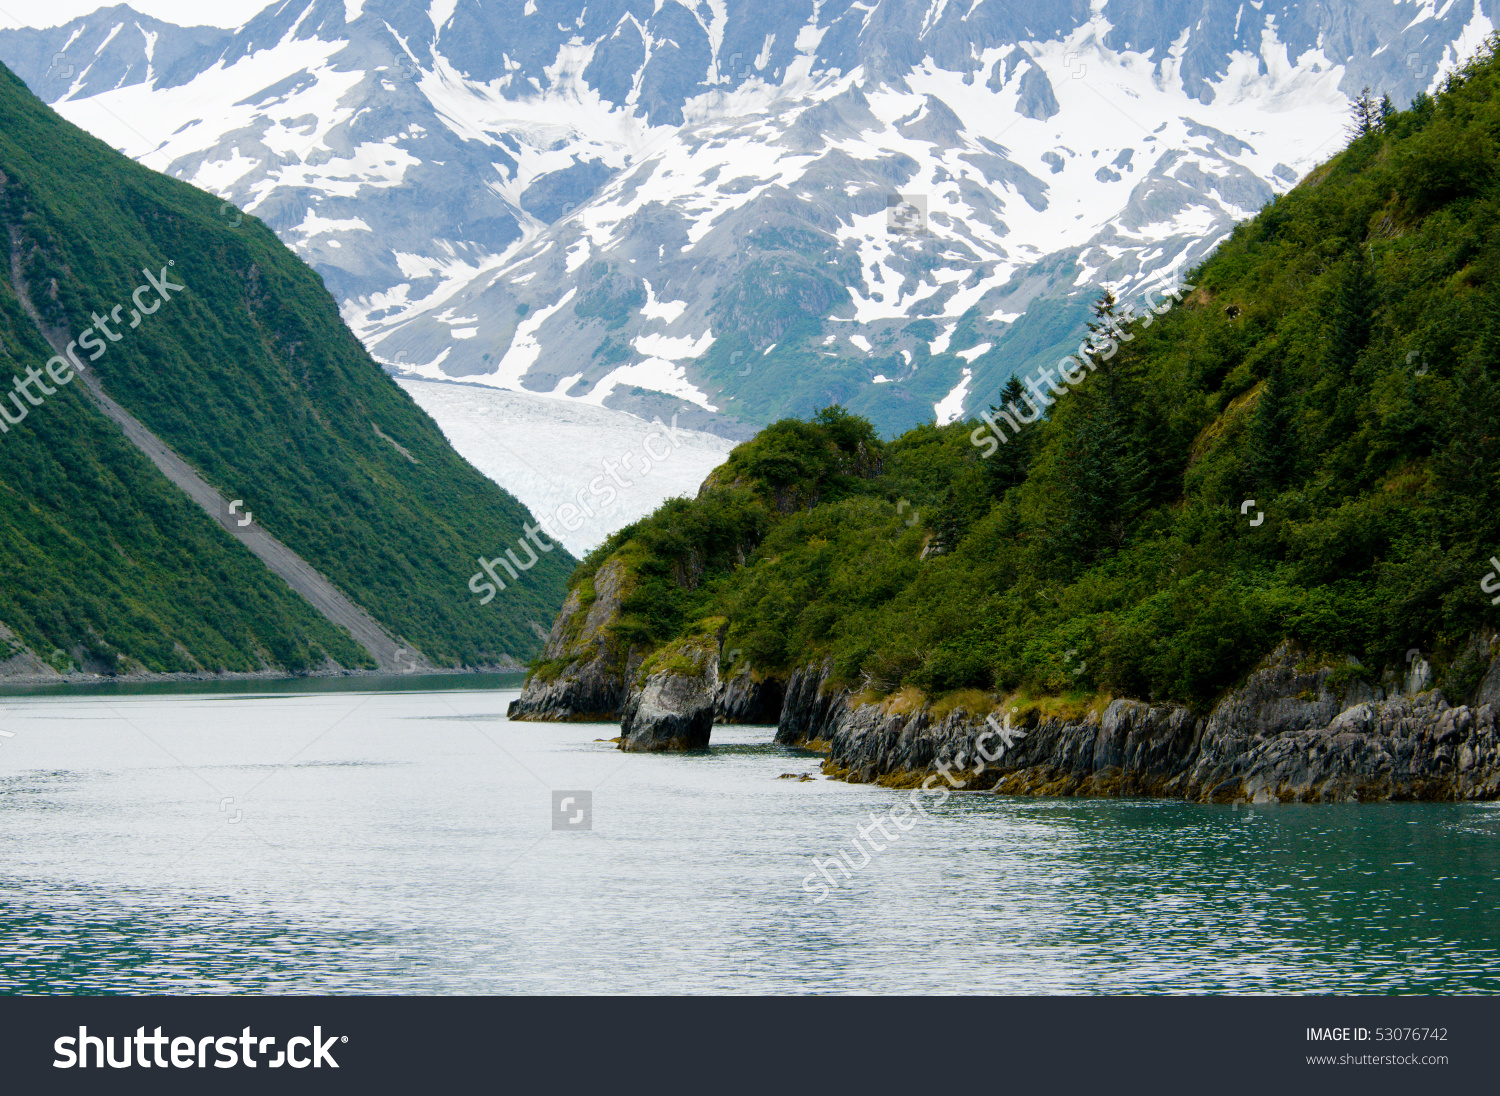 Fjords National Park clipart #16, Download drawings